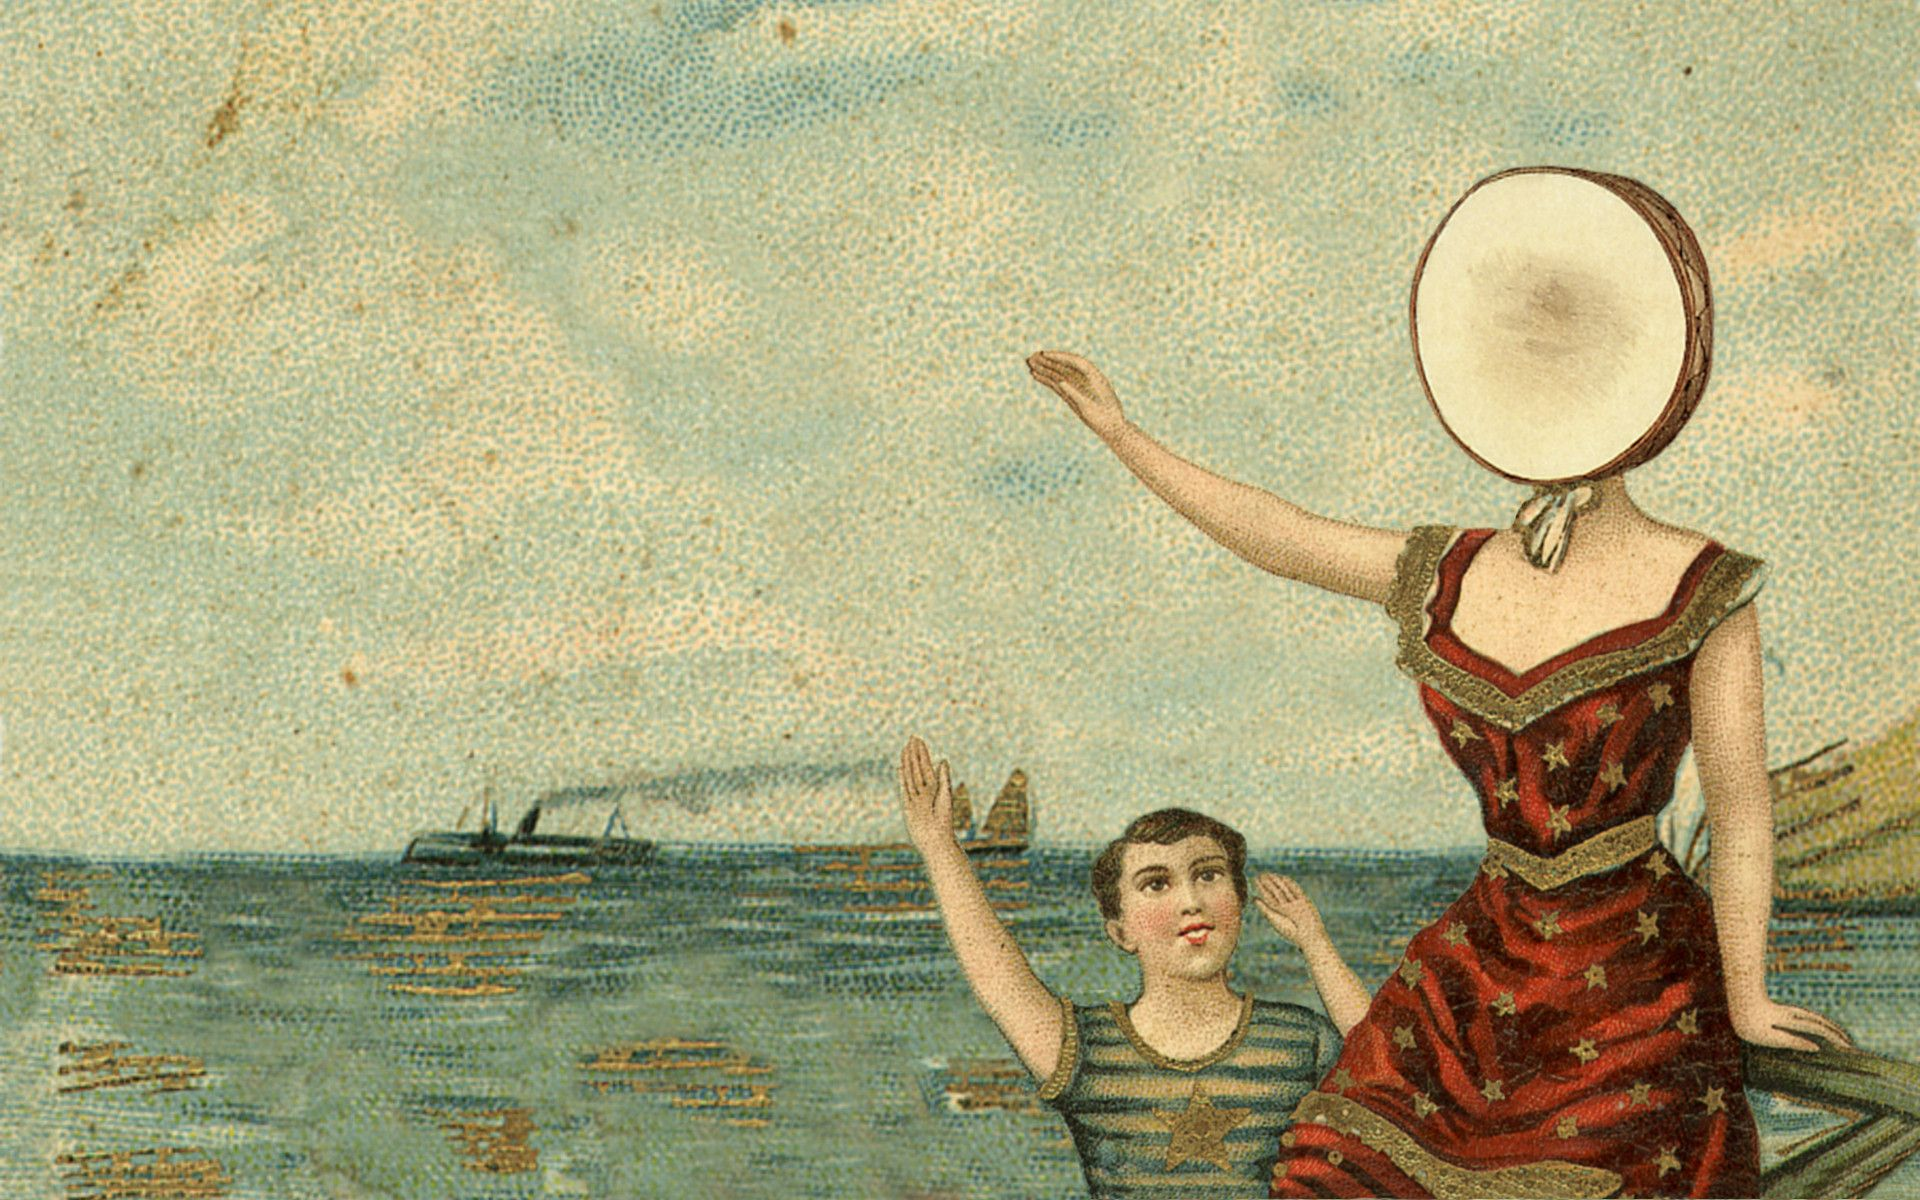 6361214653292562951888380992_in-the-aeroplane-over-the-sea-neutral-milk-hotel-painting.jpg